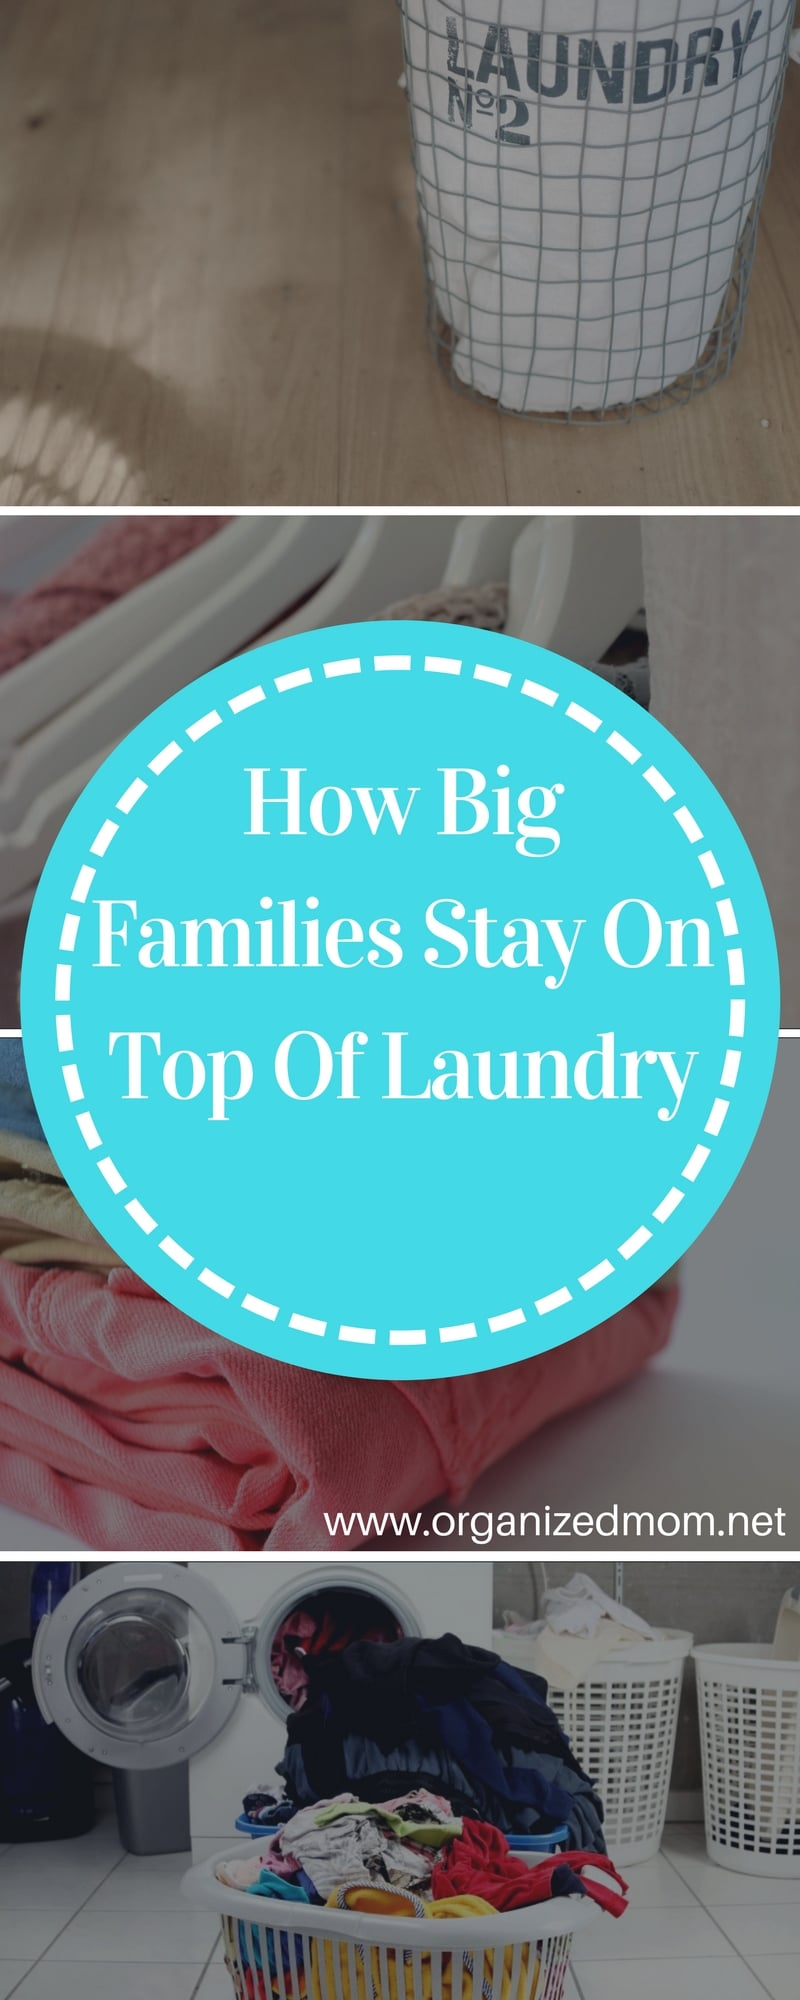 Organization--How Big Families Stay On Top of Laundry--The Organized Mom